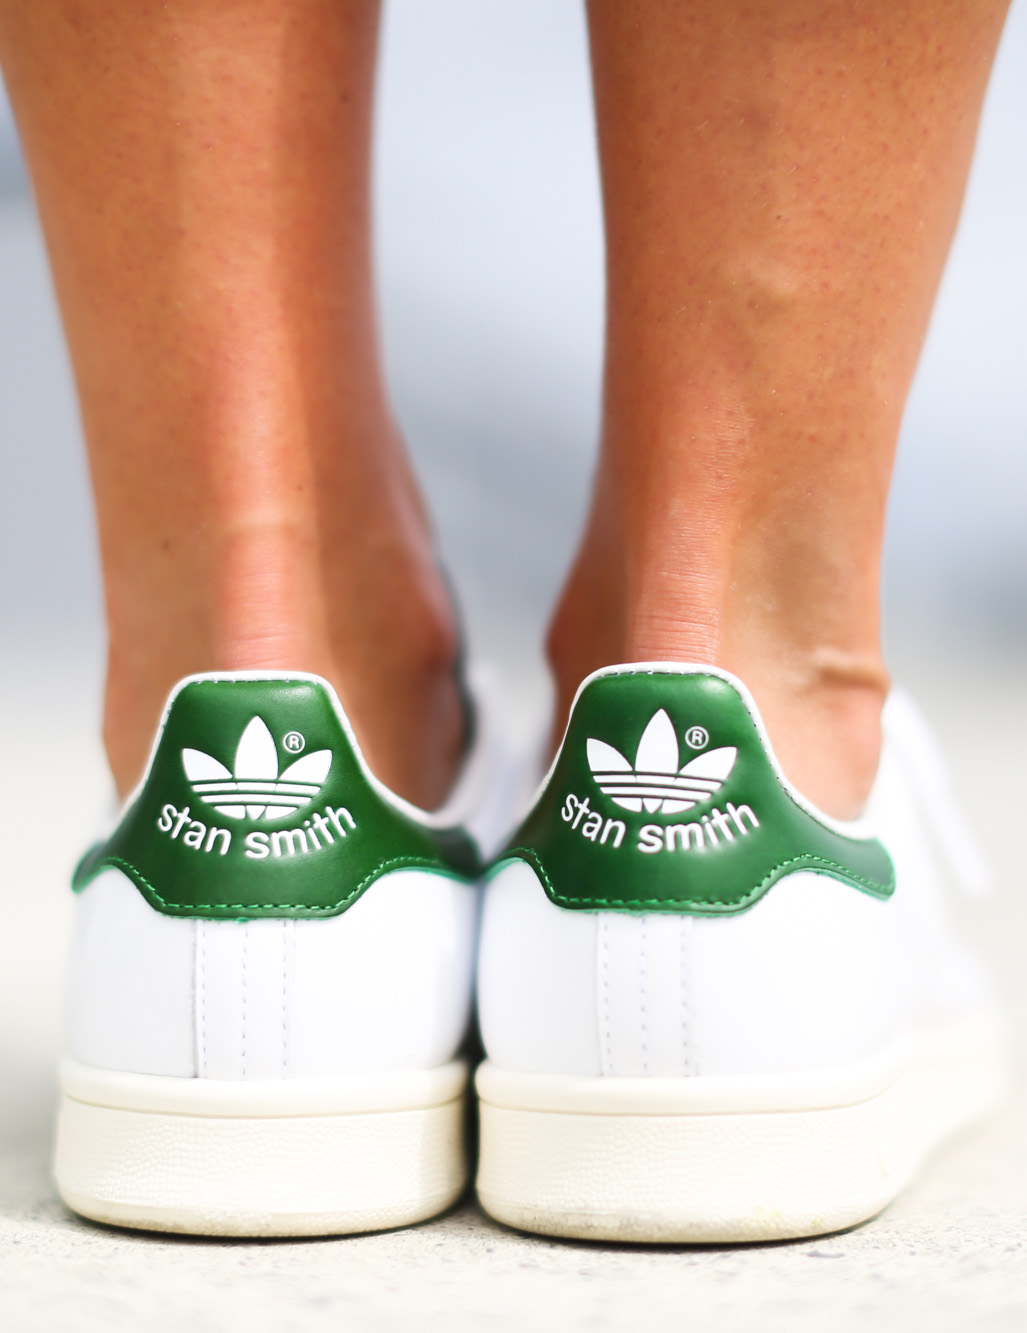 This is definitely the sneakers of this Summer. Adidas Stan Smith. Via Izortze Setien